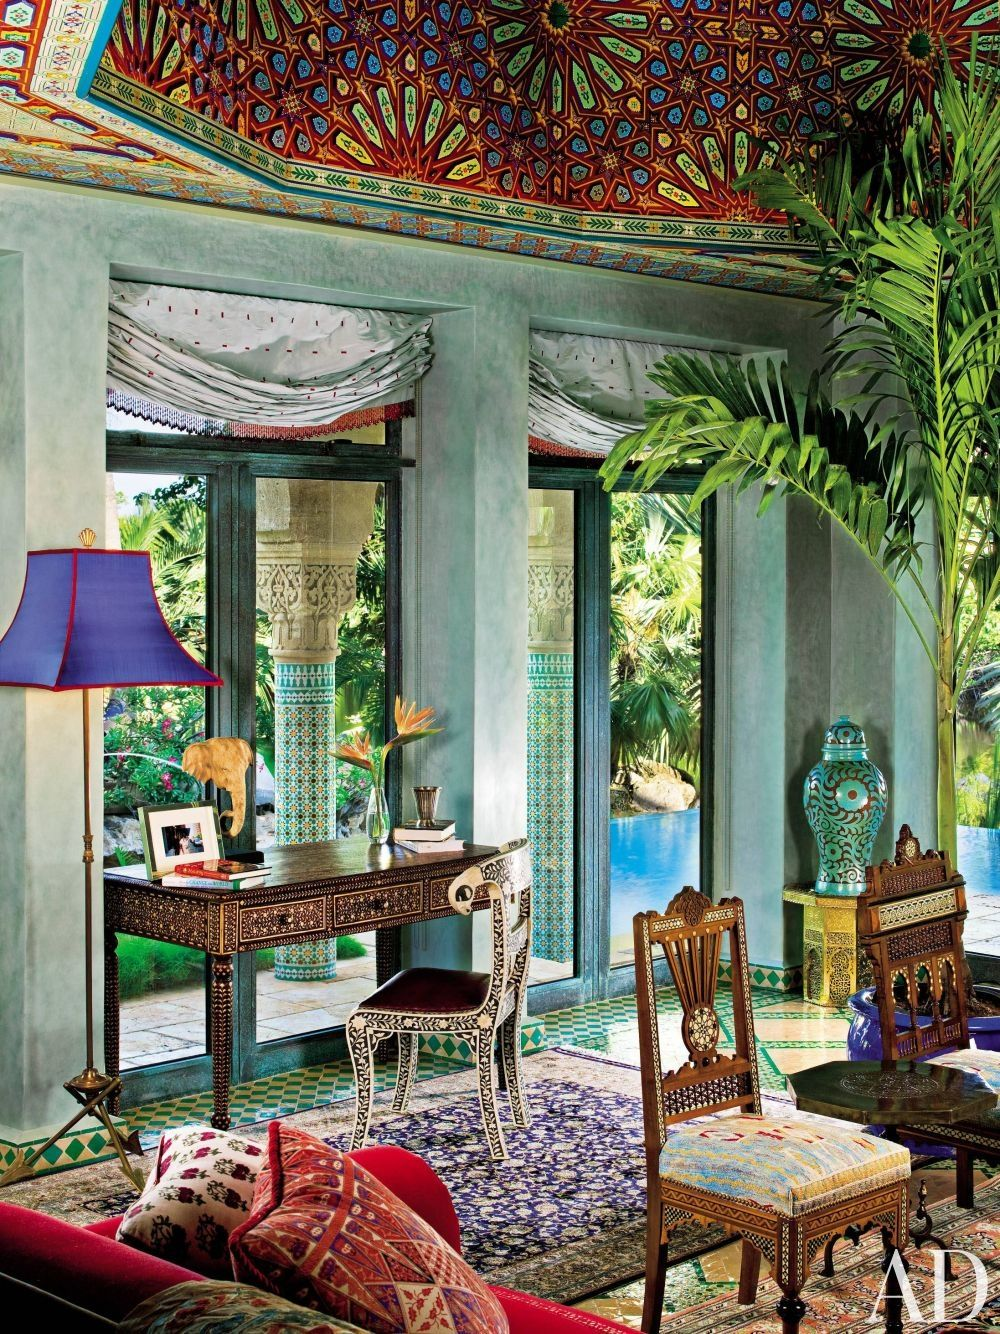 take a trip to morocco – 7 tips to nail this exotic decorating